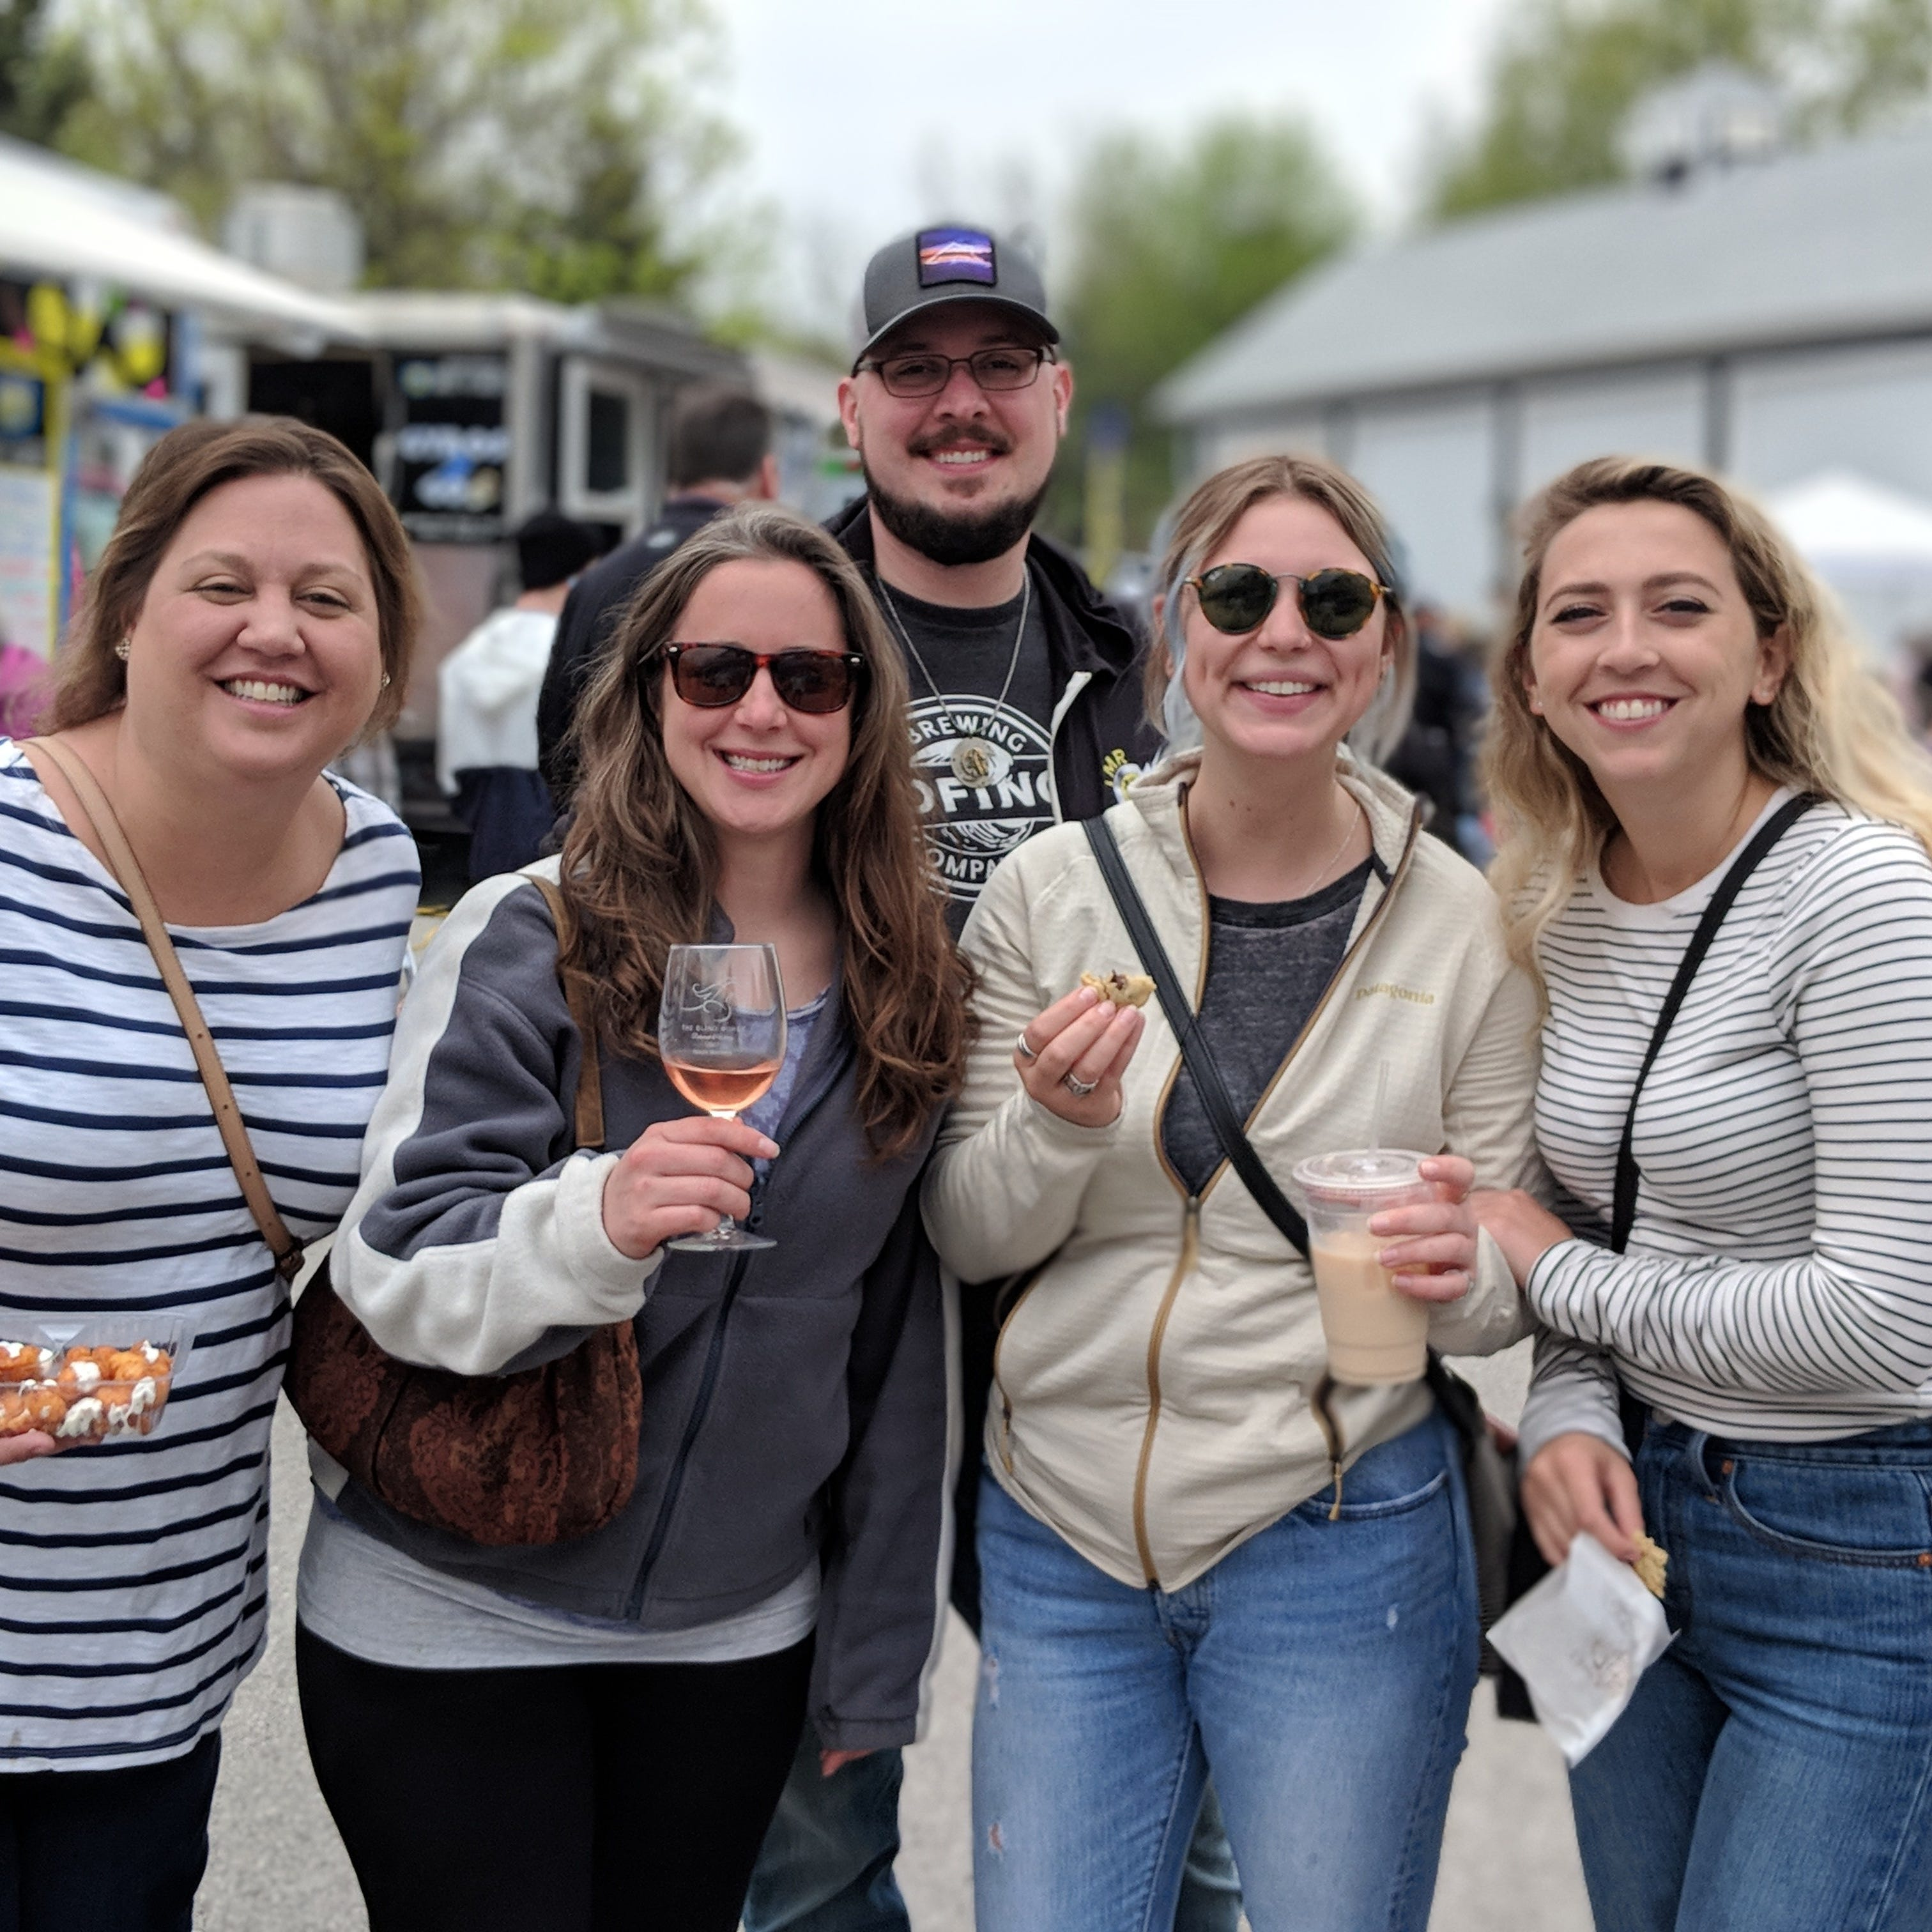 Gourmet Food Truck Festival, Dept. of Public Works open house | Around Town